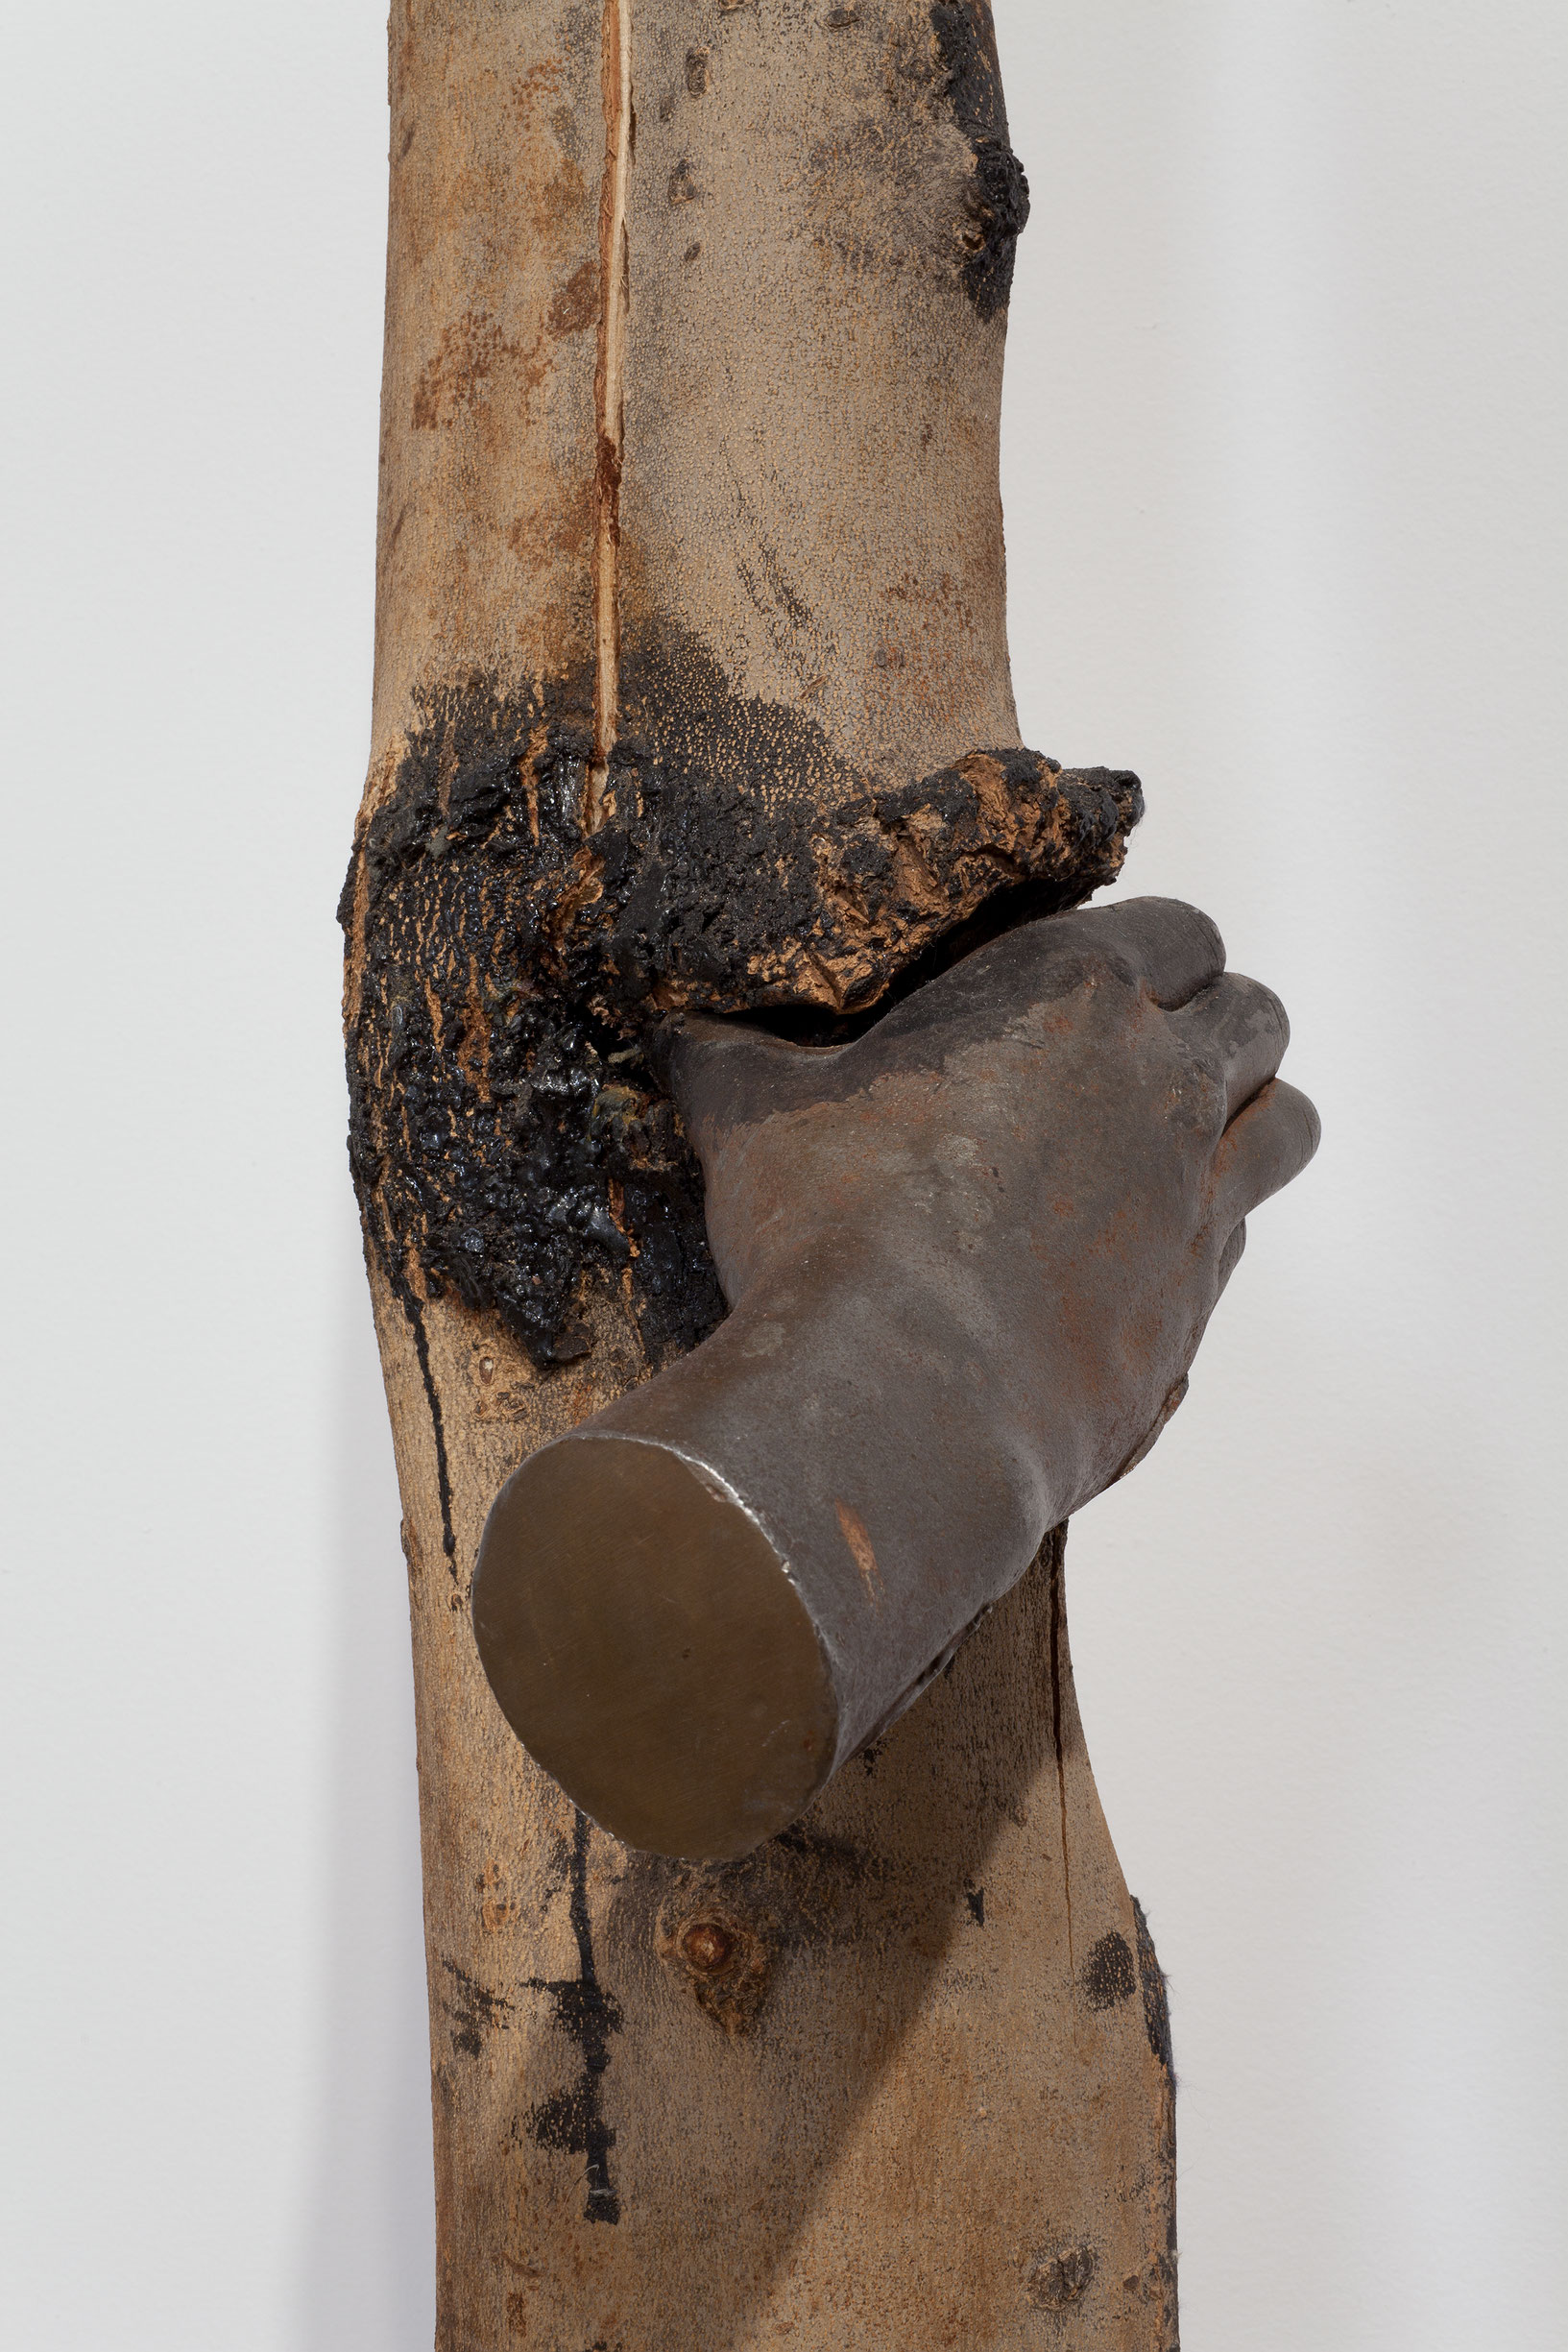 Giuseppe Penone I Have Been A Tree In The Hand 1984 1991